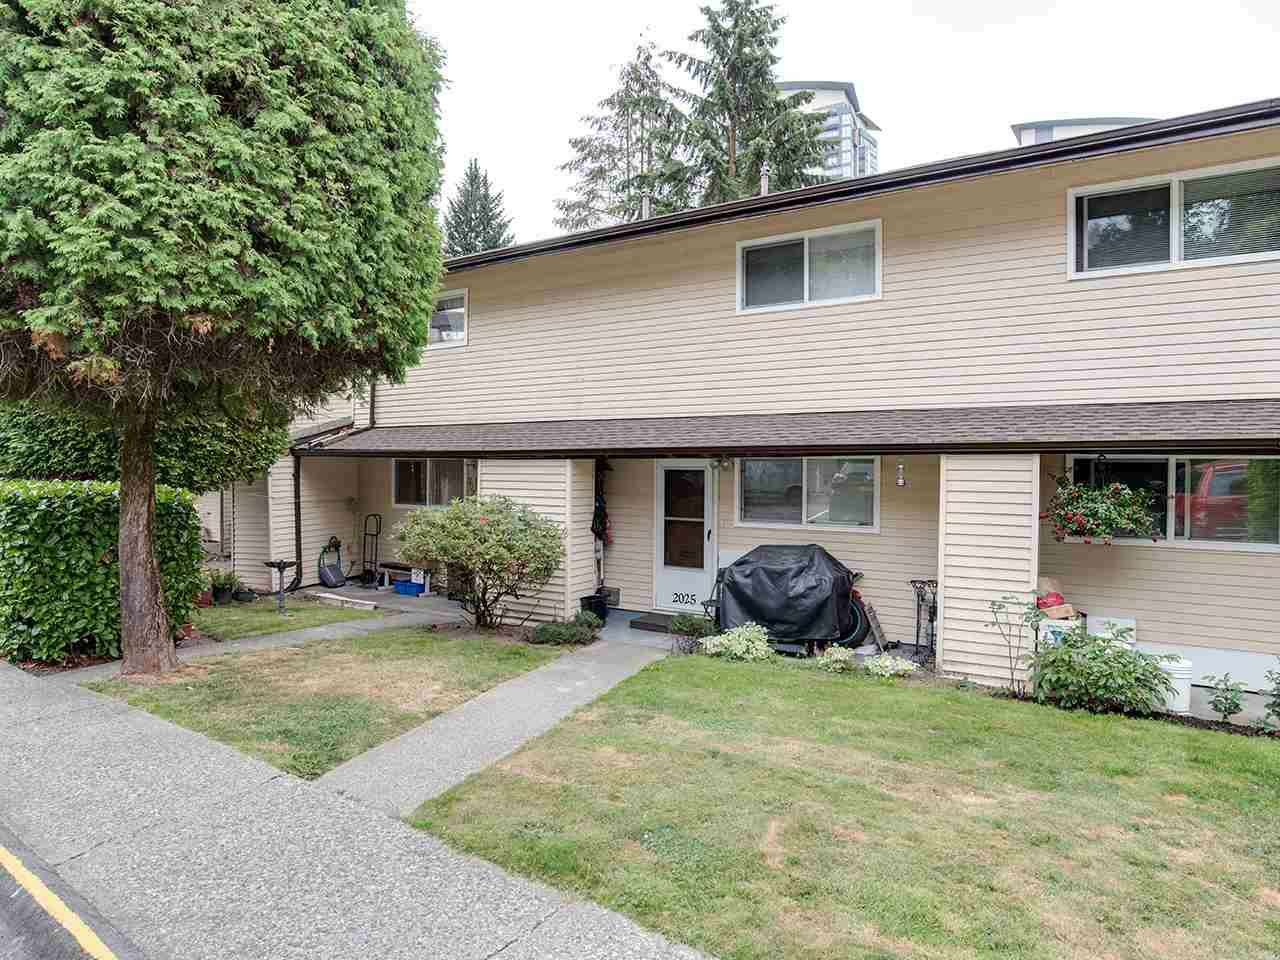 "Main Photo: 2023 HOLDOM Avenue in Burnaby: Parkcrest Townhouse for sale in ""BRENTWOOD GARDENS"" (Burnaby North)  : MLS®# R2394577"